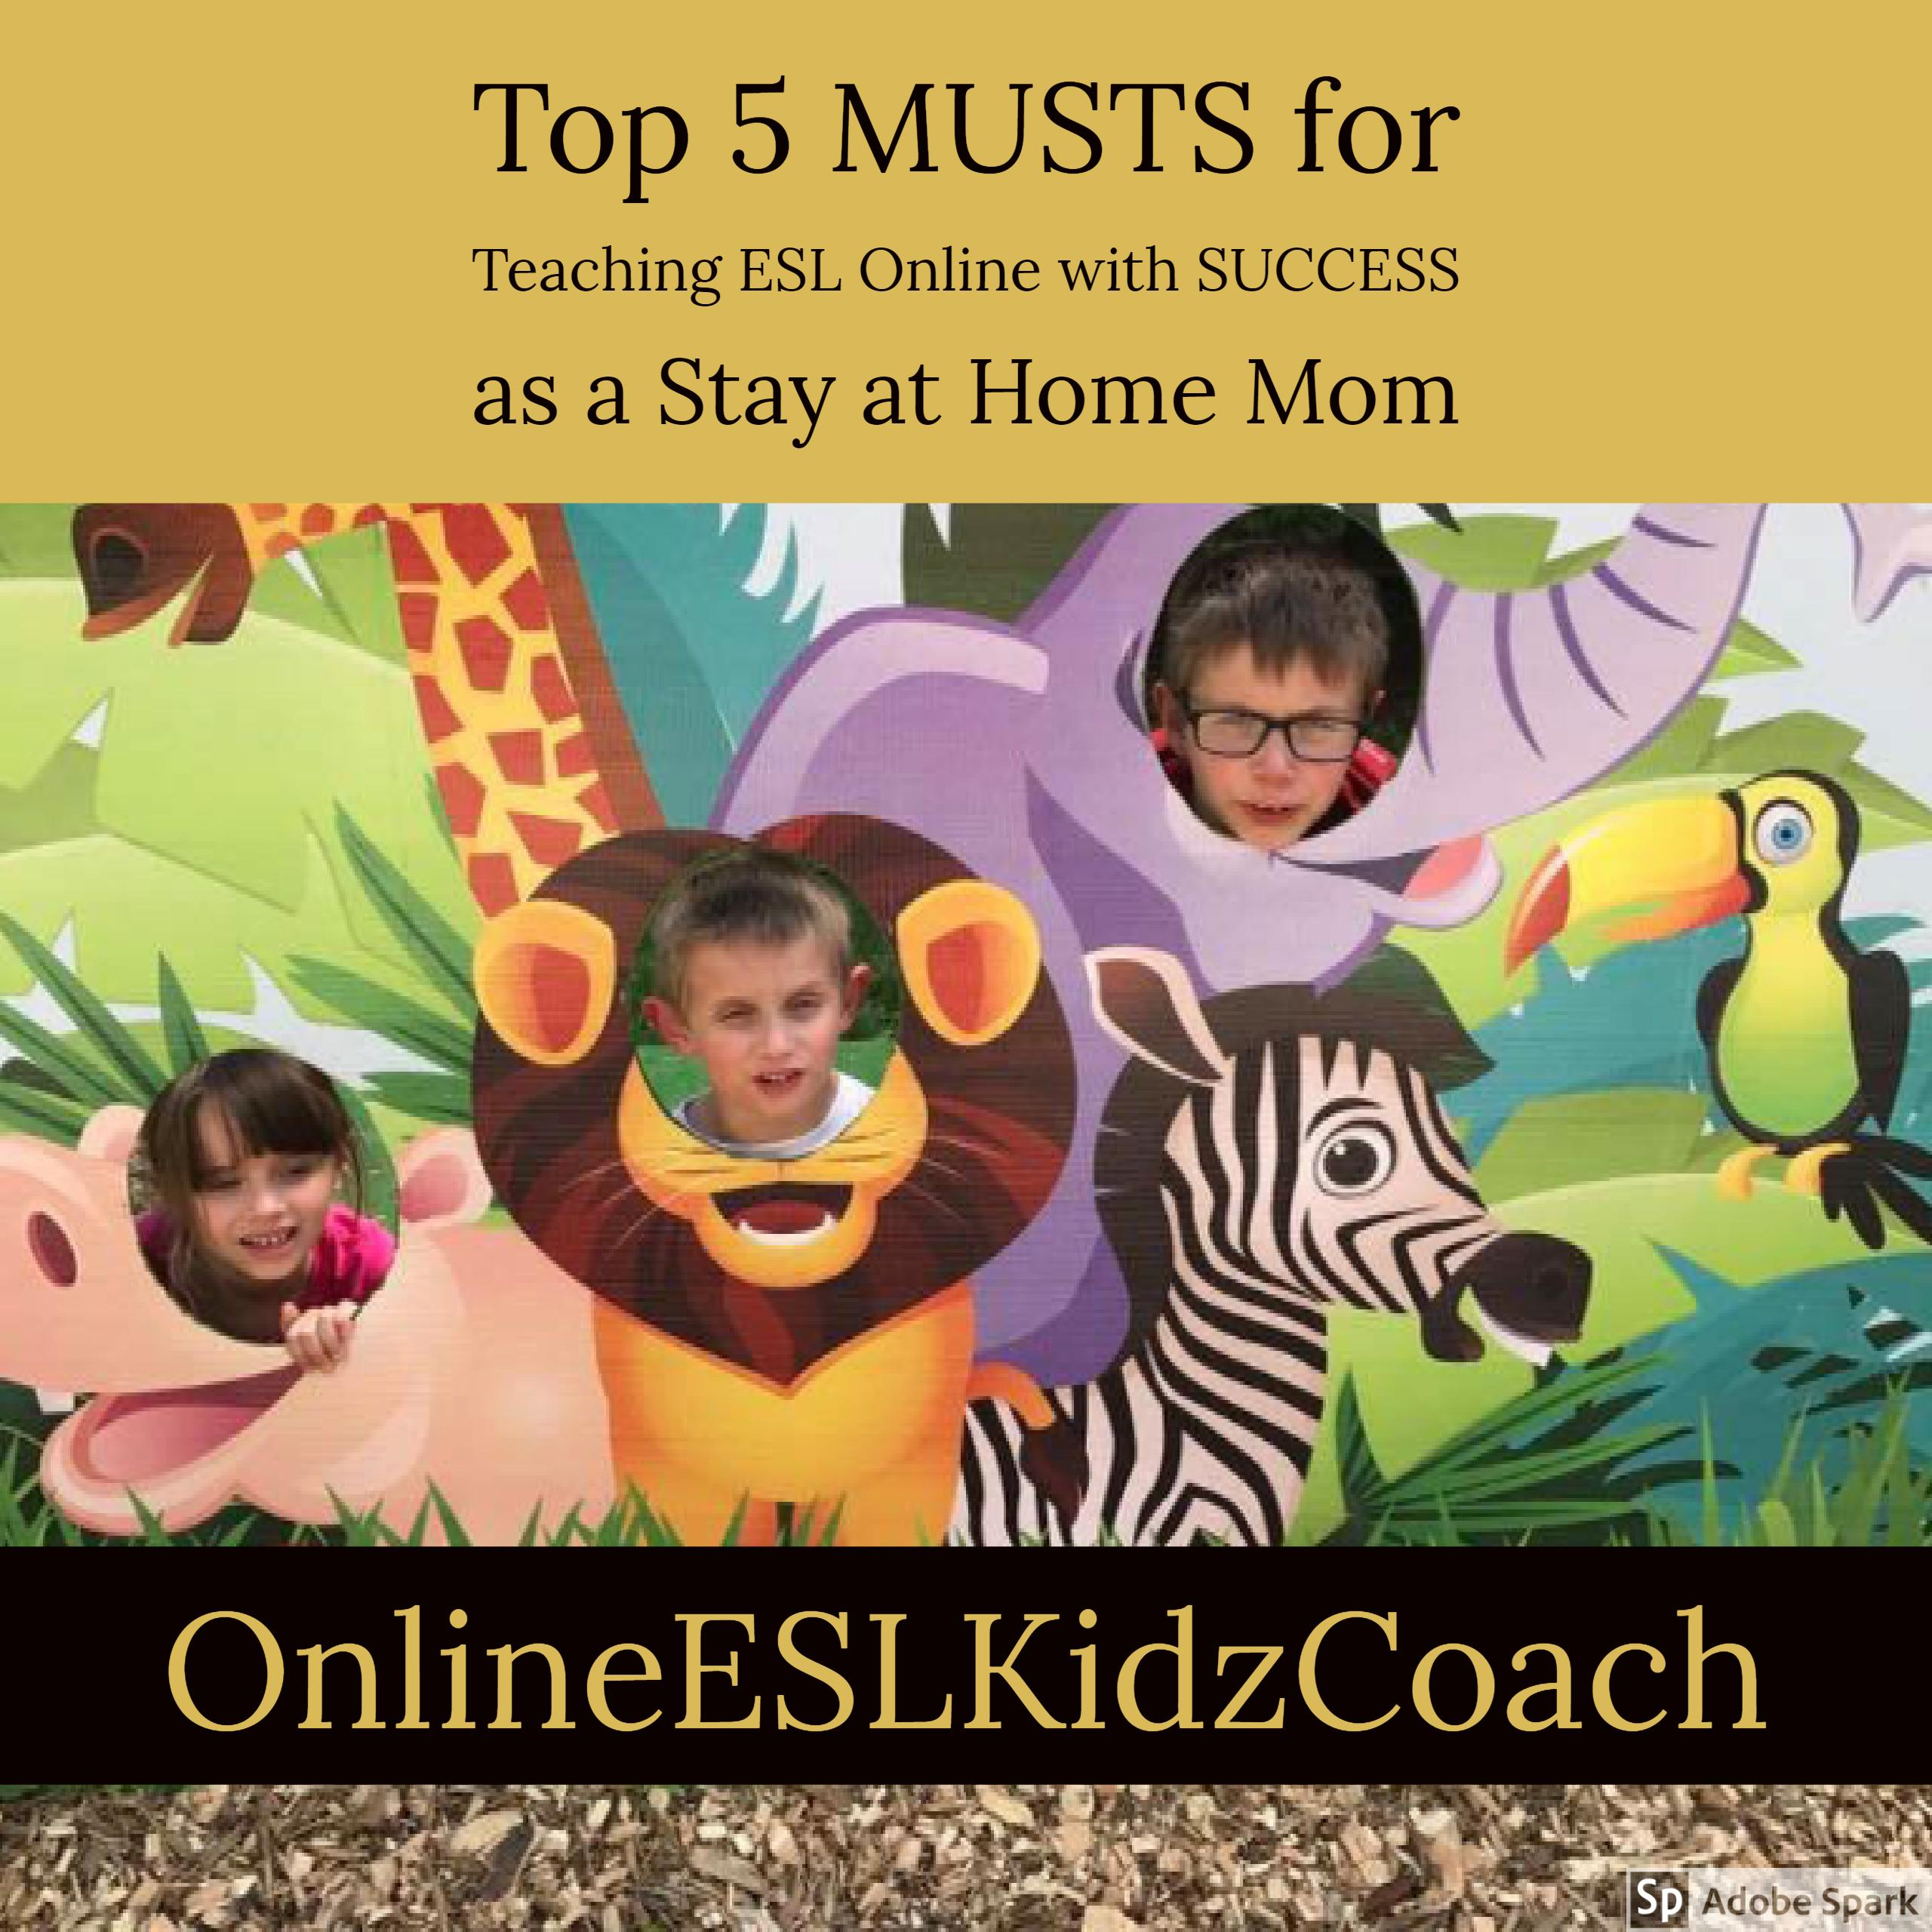 Blog Post Series: Top 5 MUSTS for Teaching ESL Online as a Stay at Home Mom